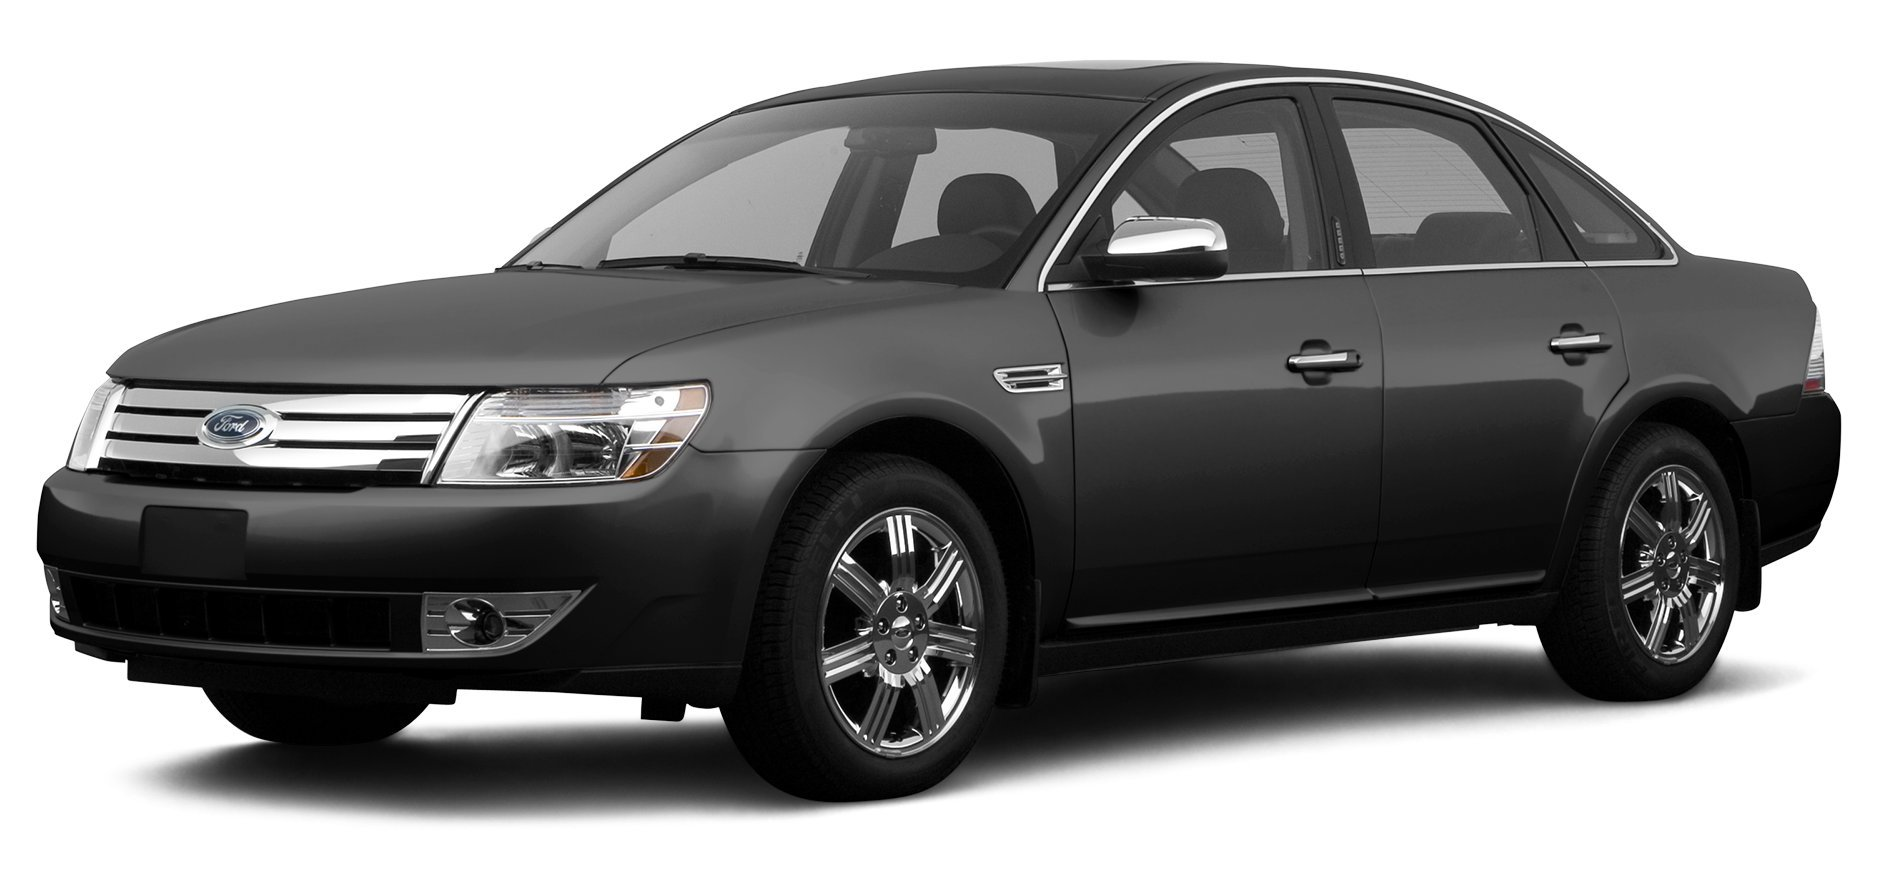 2008 ford taurus limited 4 door sedan all wheel drive